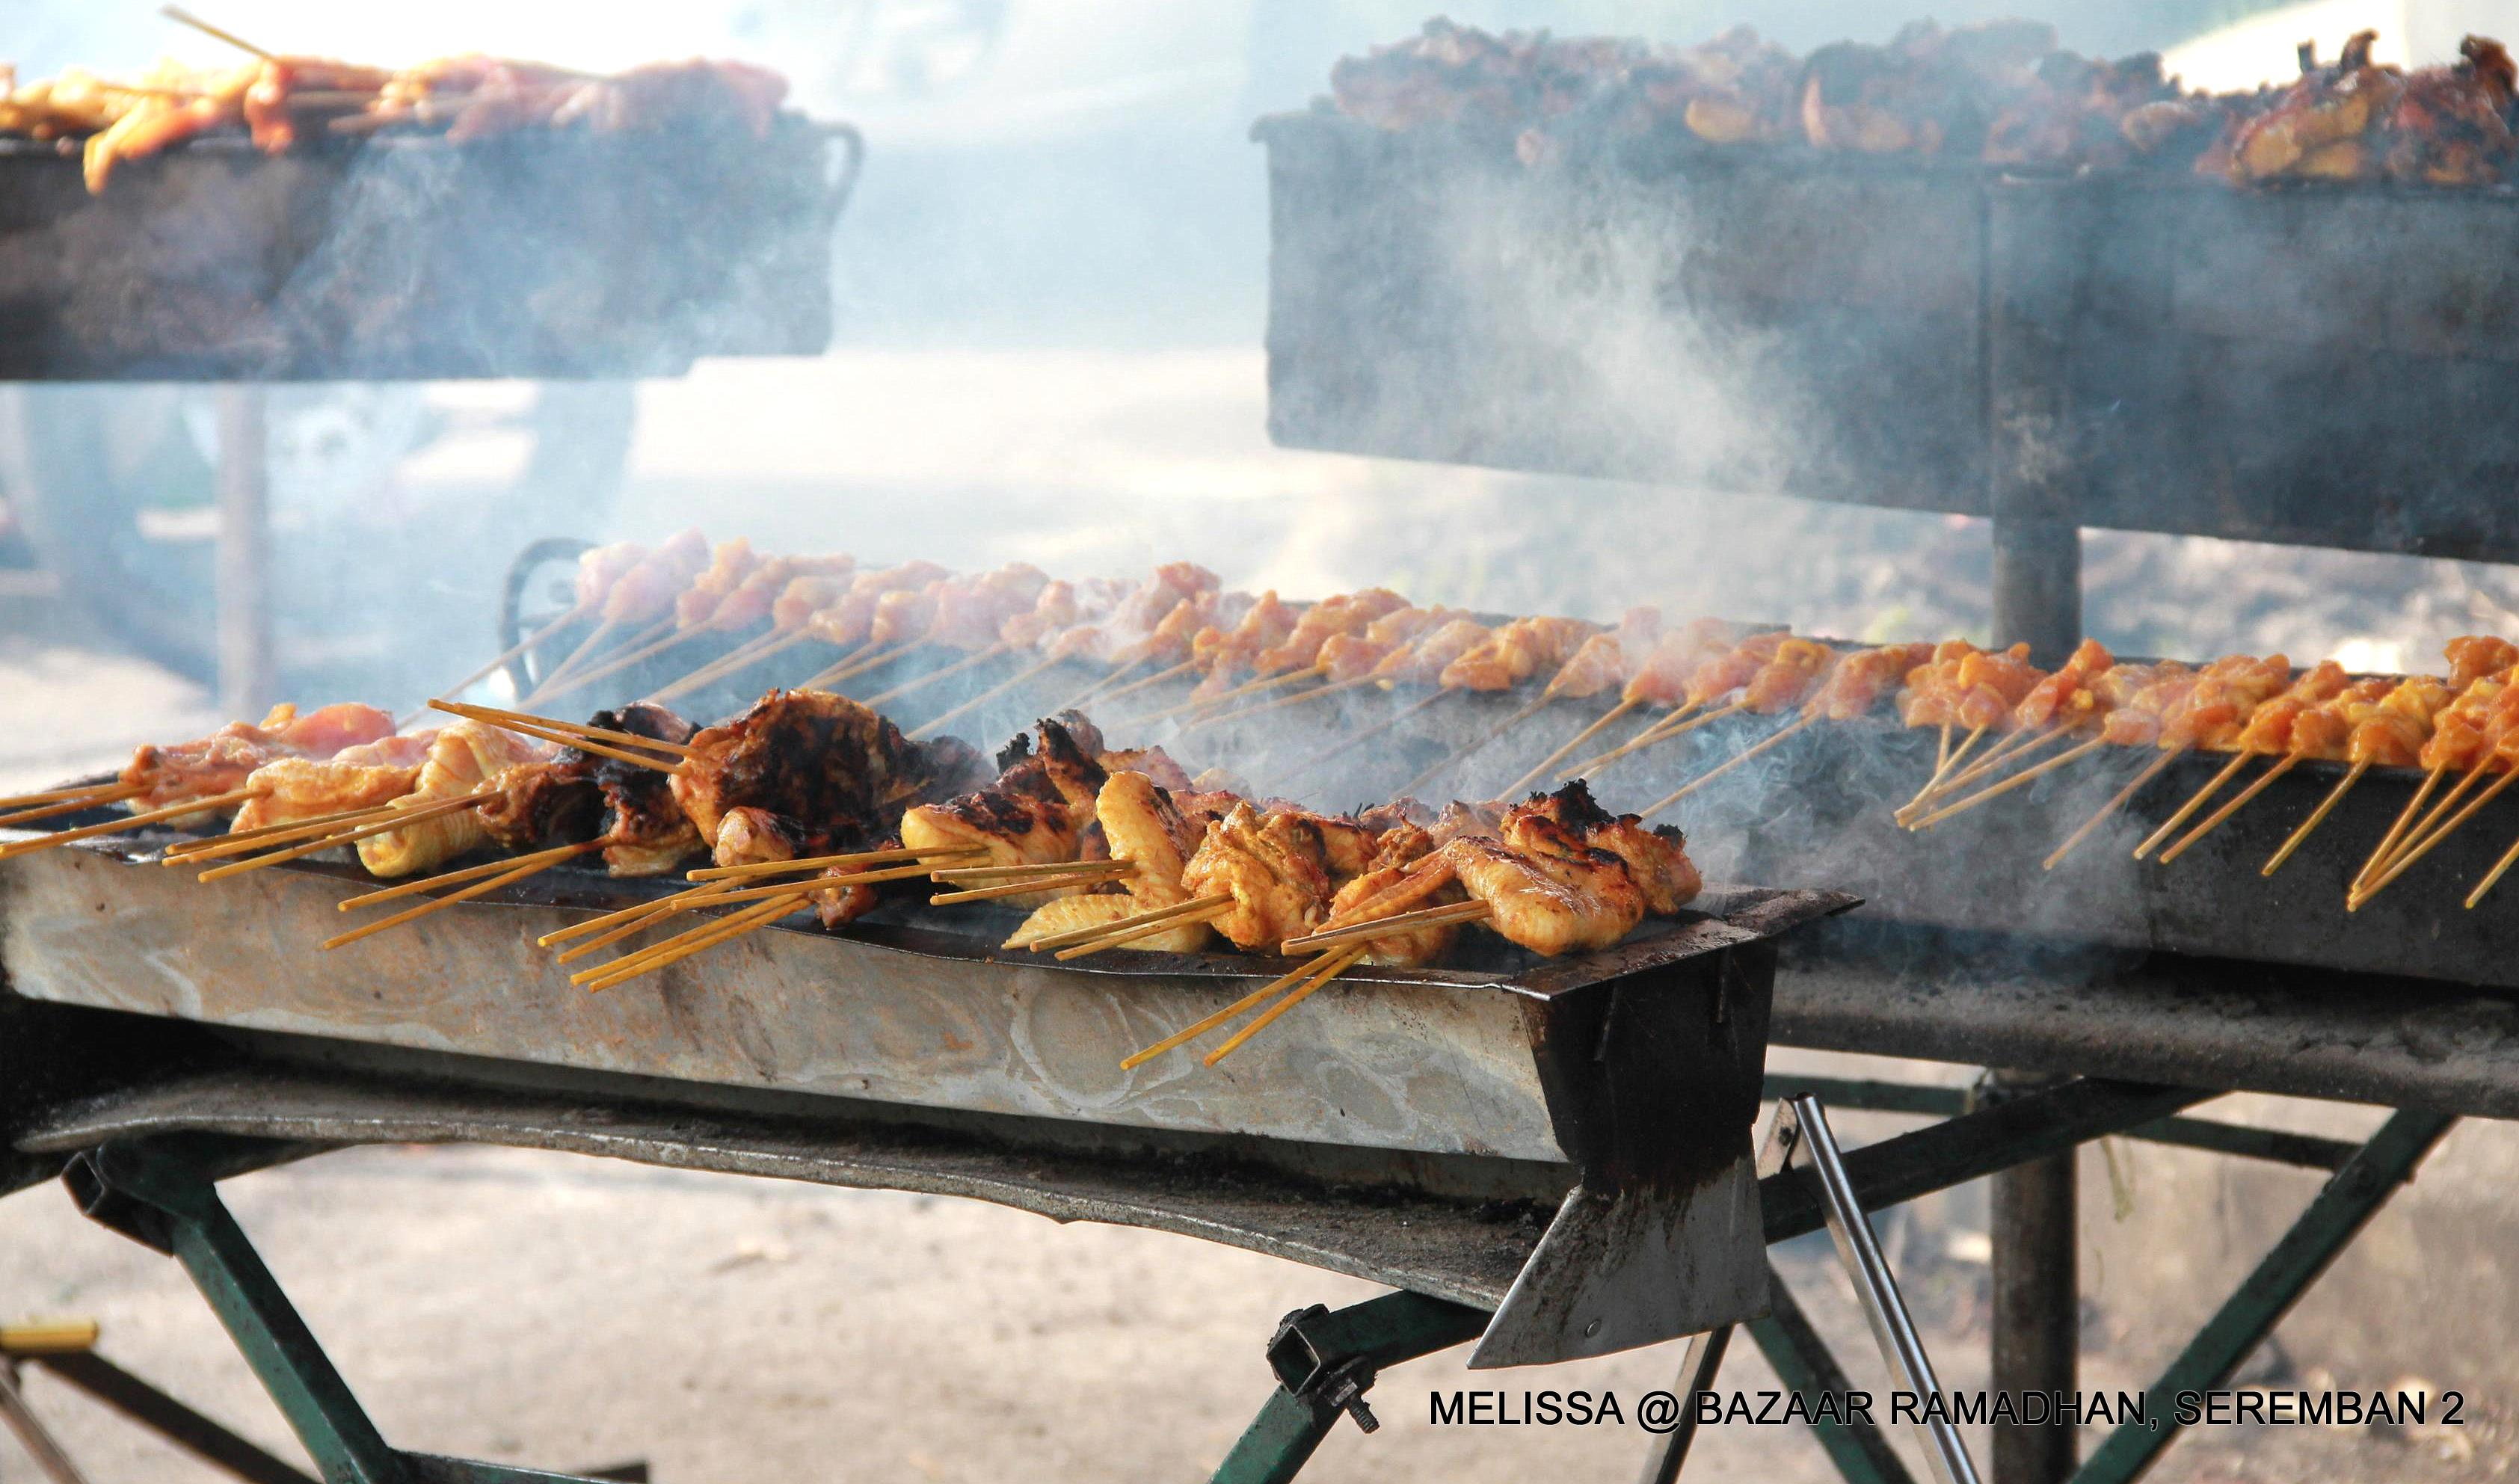 The scent of *ayam percik* and satay being grilled fill the air.